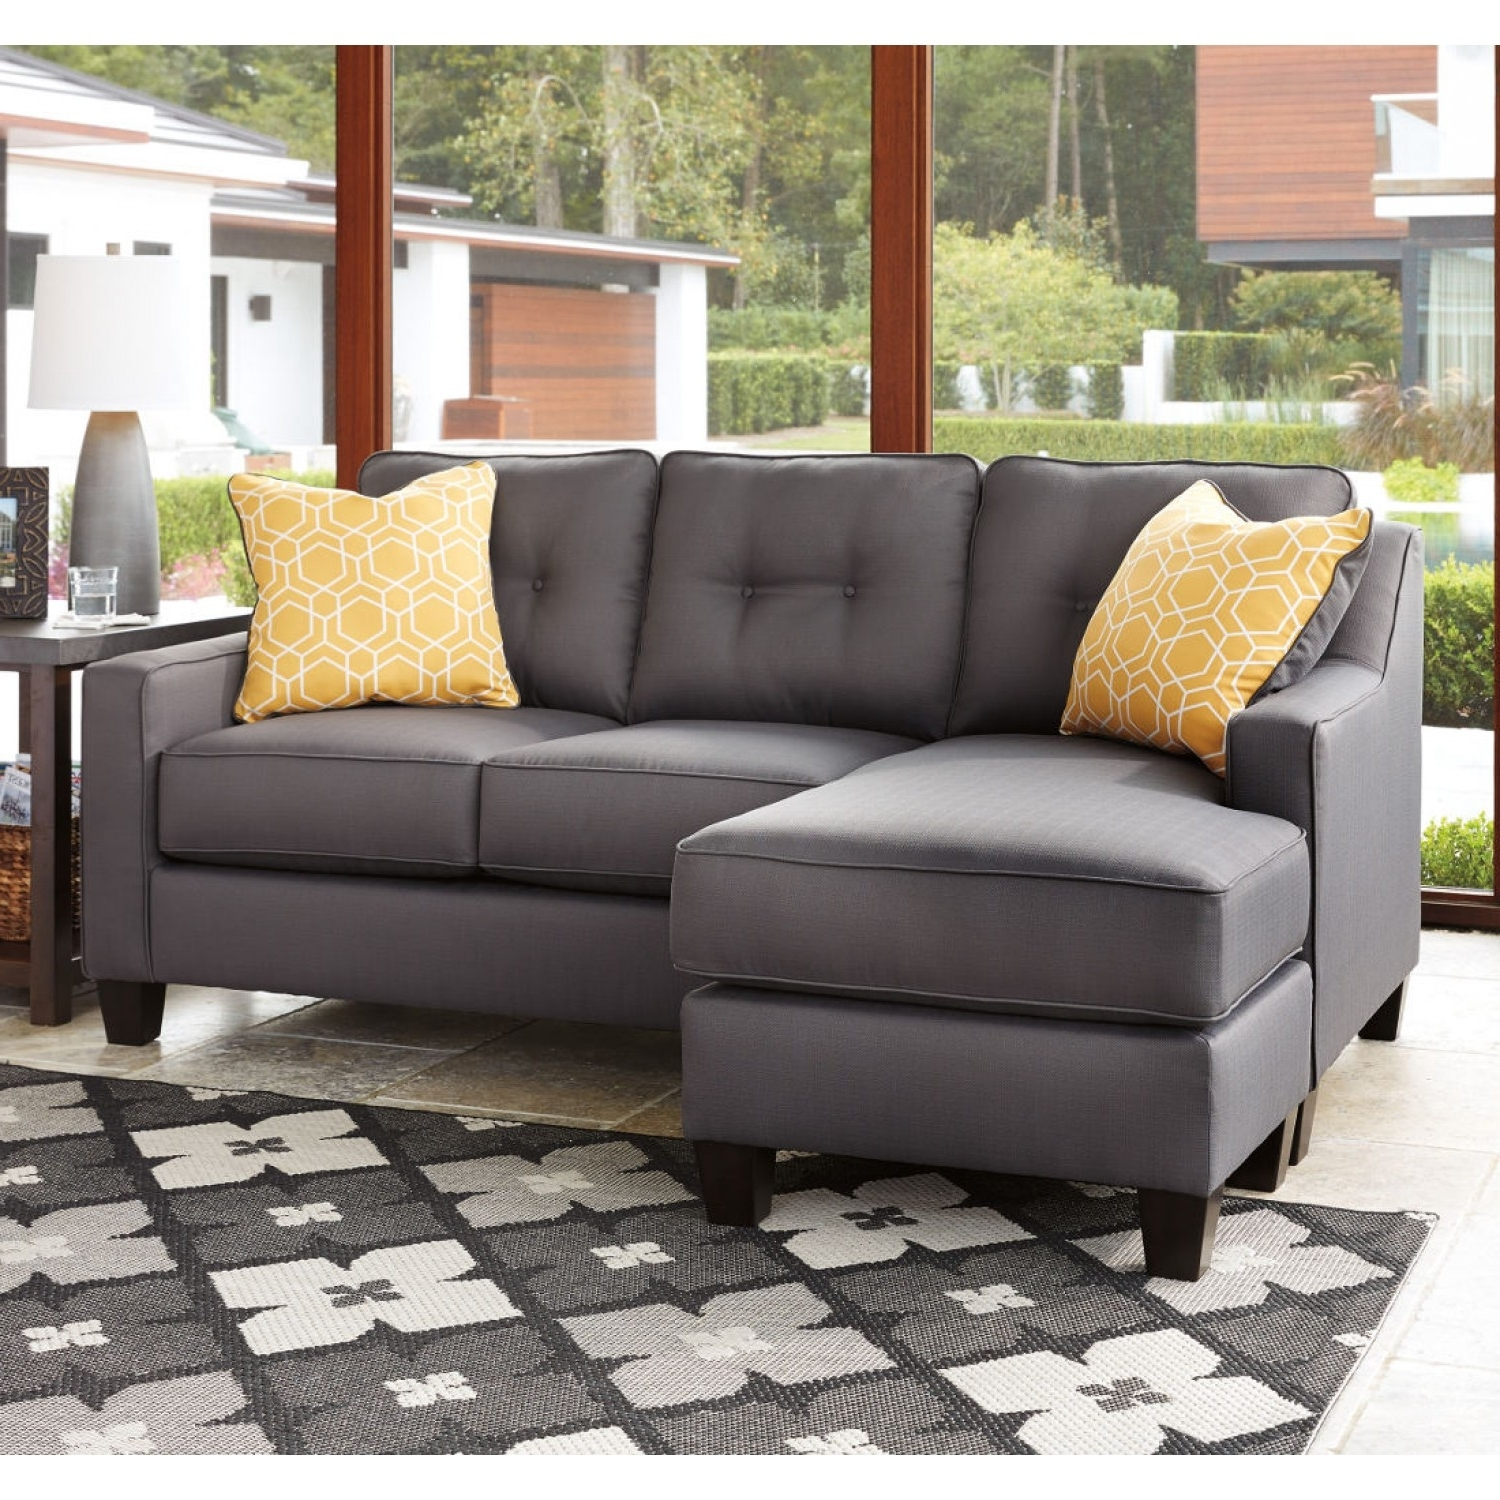 Most Recently Released Sofa And Chaise Sets Pertaining To Sofa And Chaise Set In Magnificent Ashley Furniture 75006 18 Set (View 7 of 15)